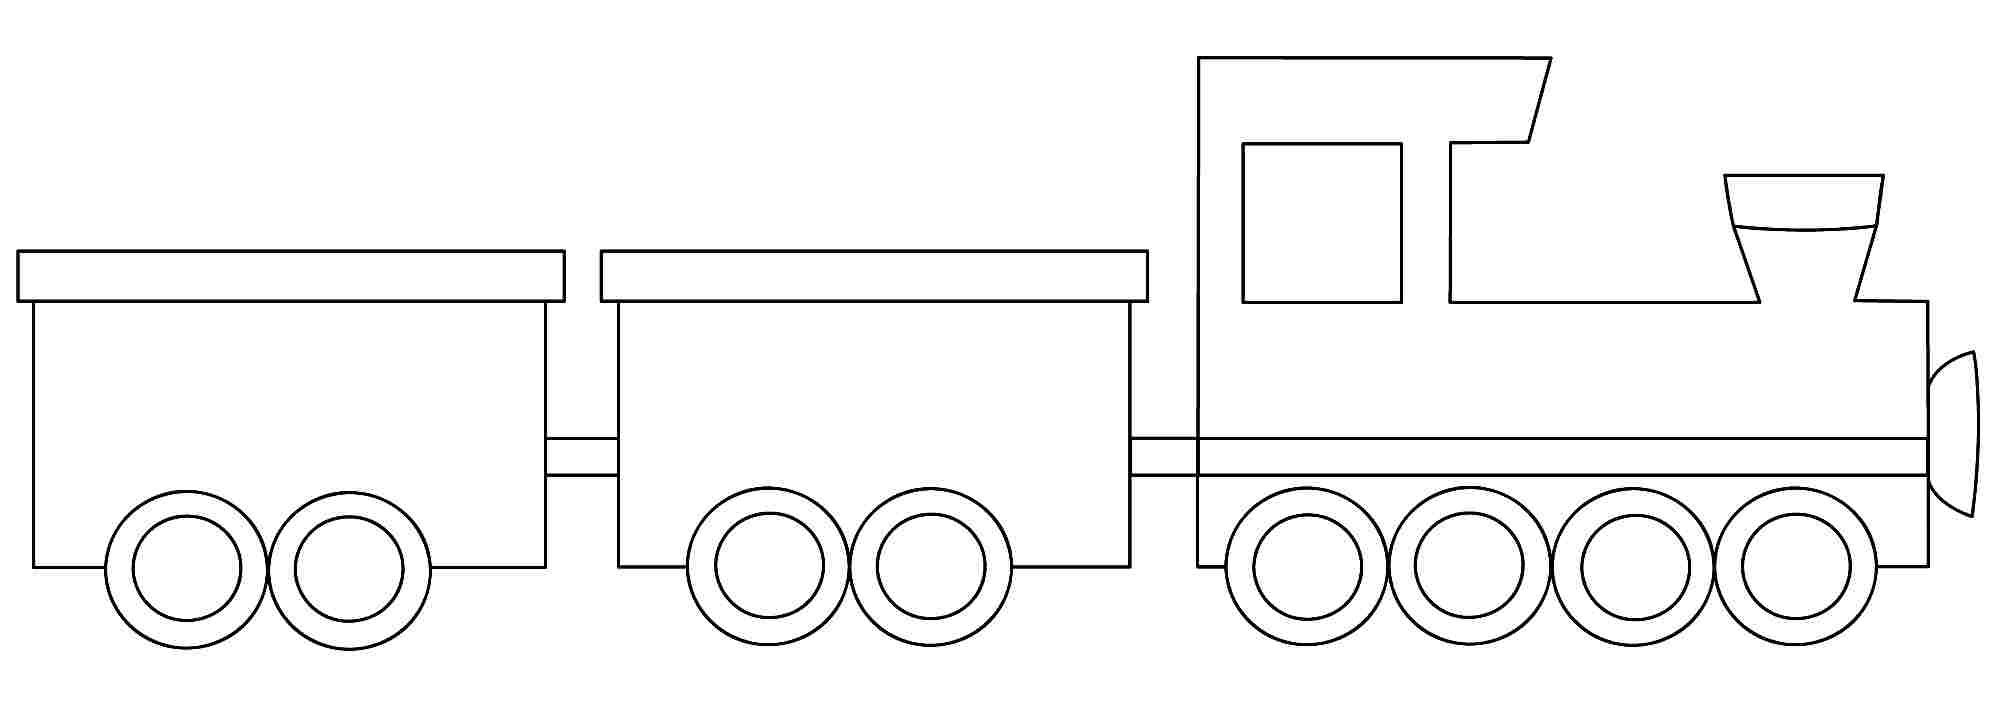 Simple Polar Express Coloring Page Printable Train Coloring Pages Train Template Coloring Pages